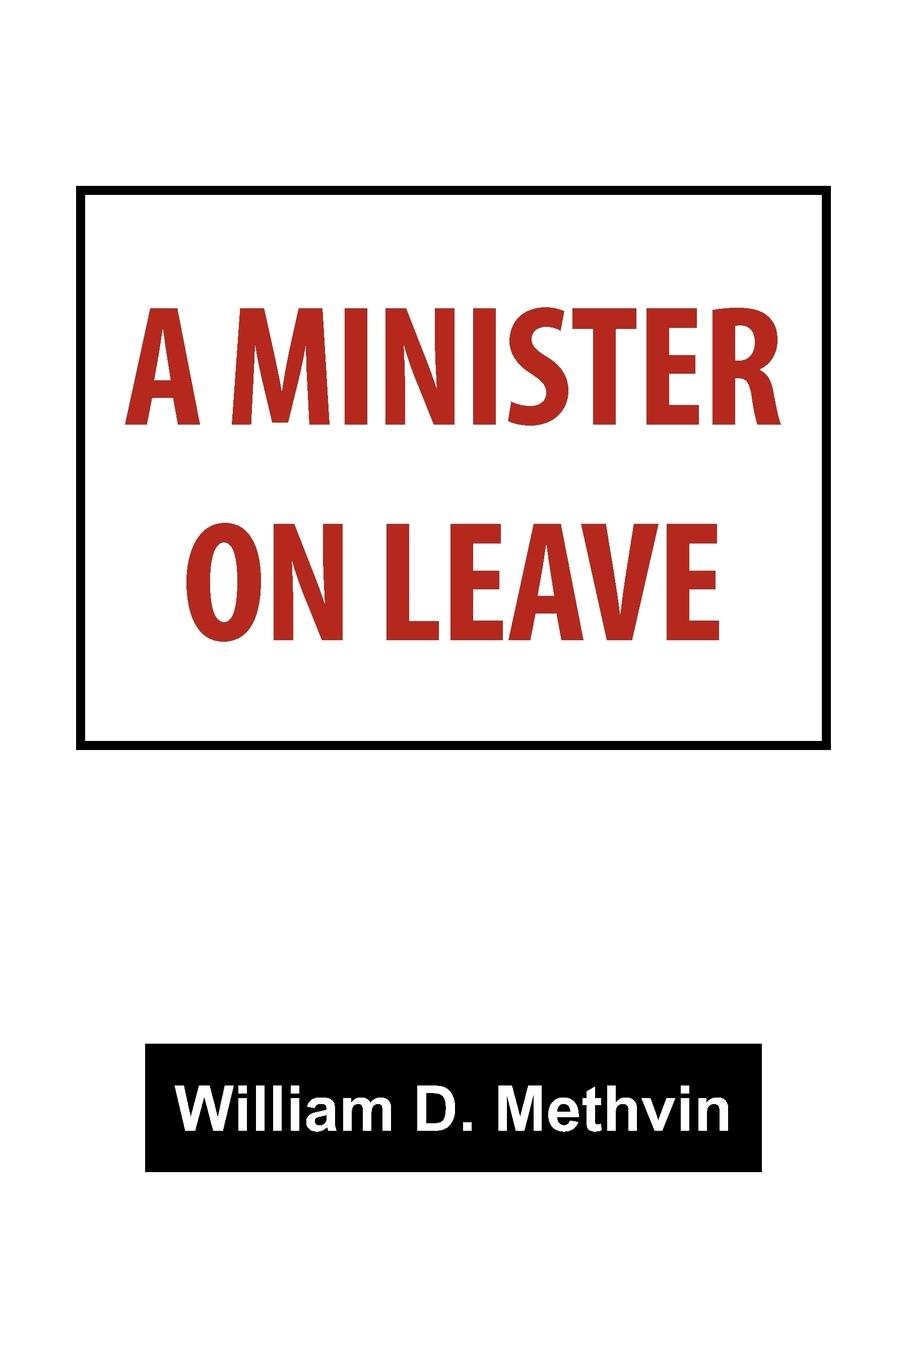 A Minister on Leave. William D. Methvin